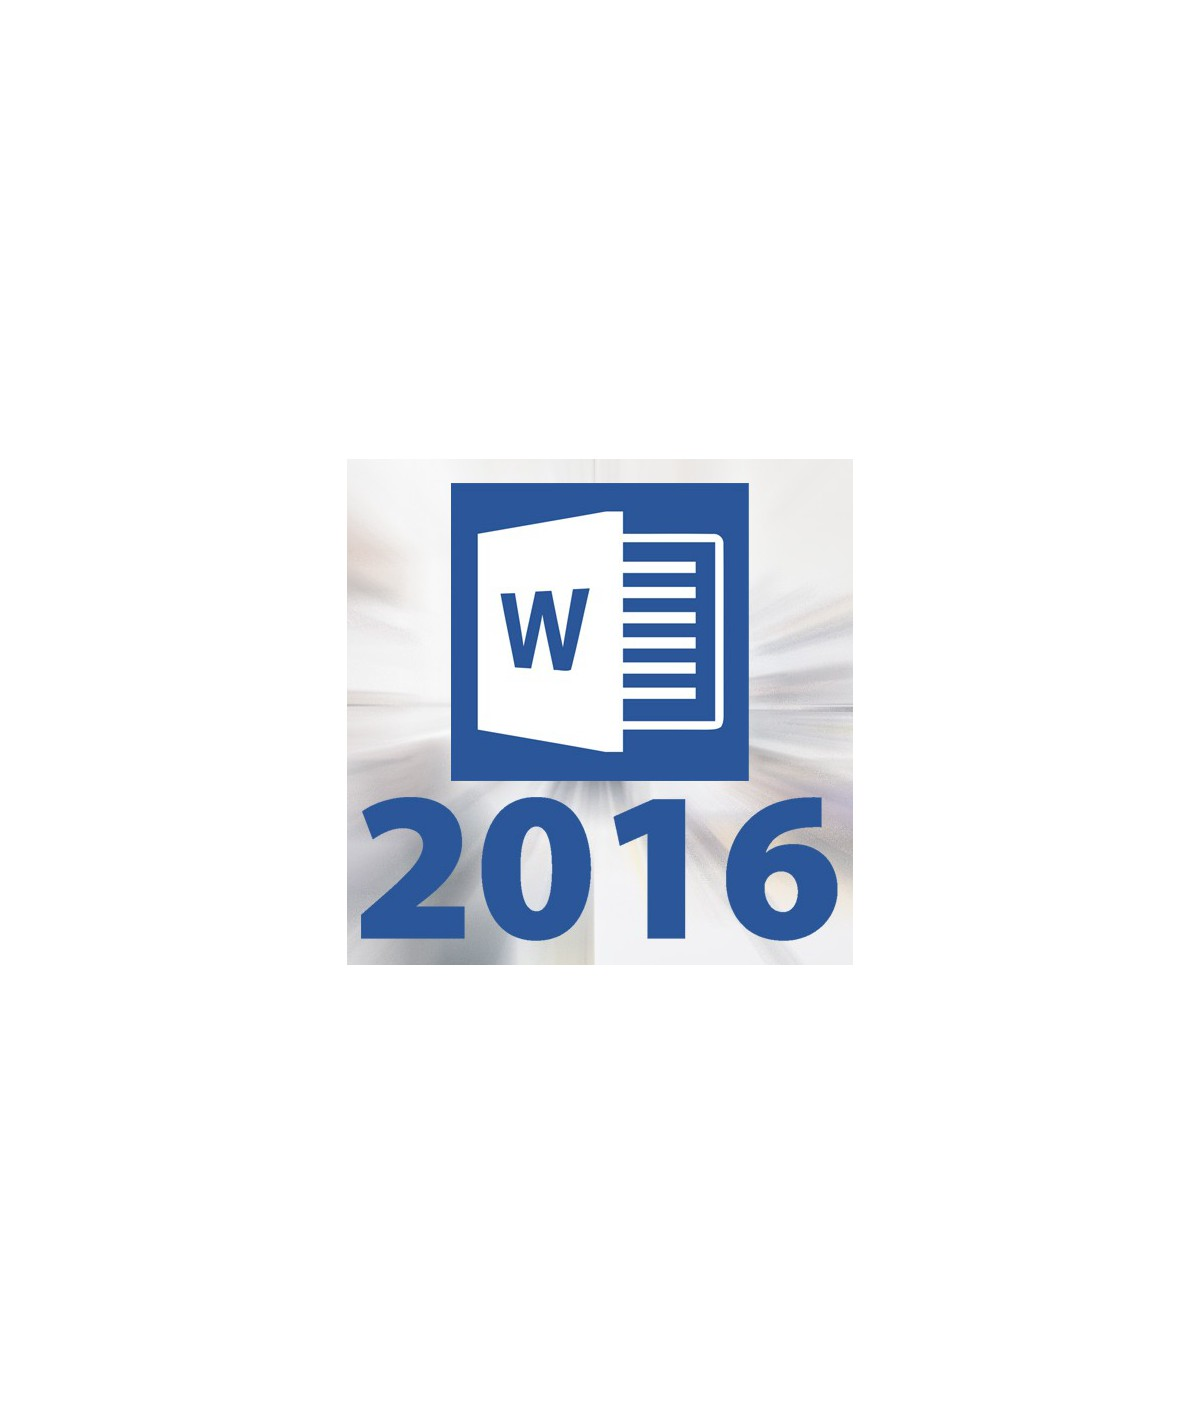 How to install microsoft office 2016 kickass - busestoconcerts com